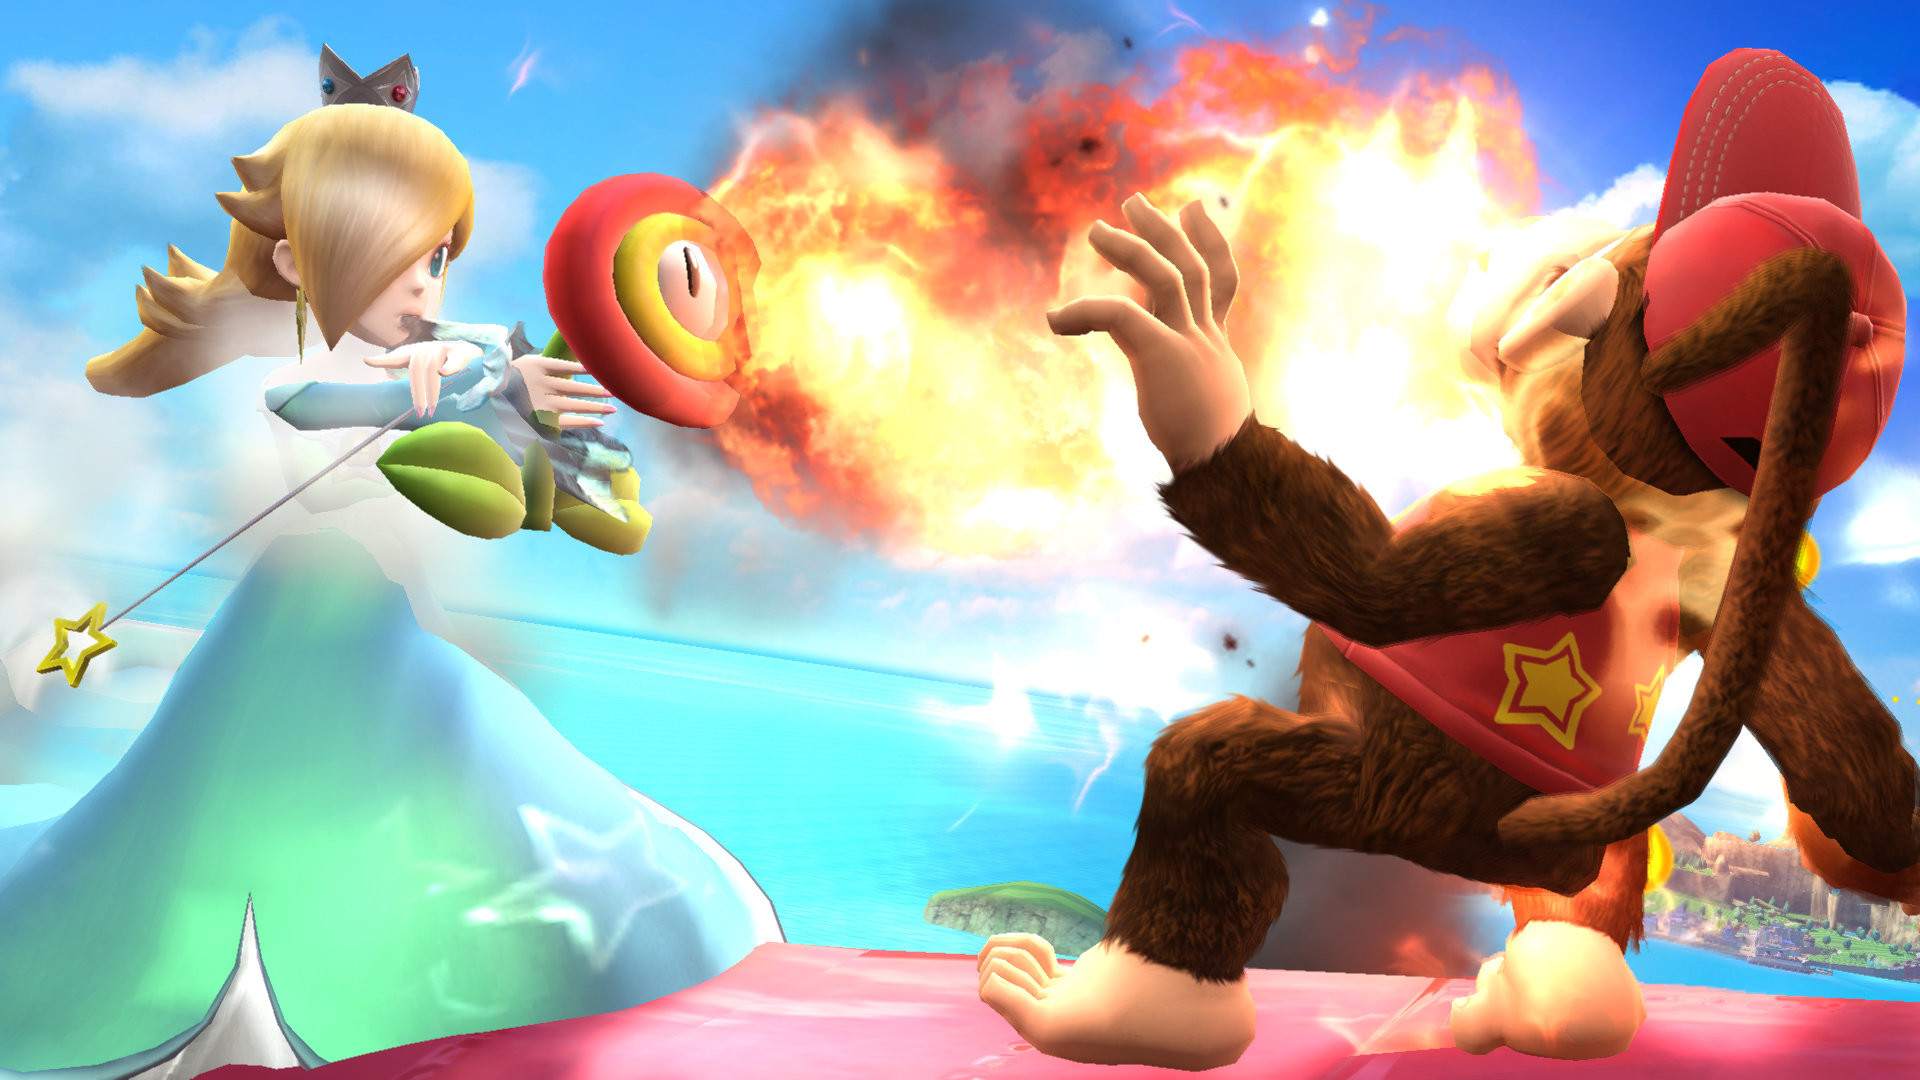 1920x1080 ... Rosalina and a Fire Flower by Rosalina-Luma